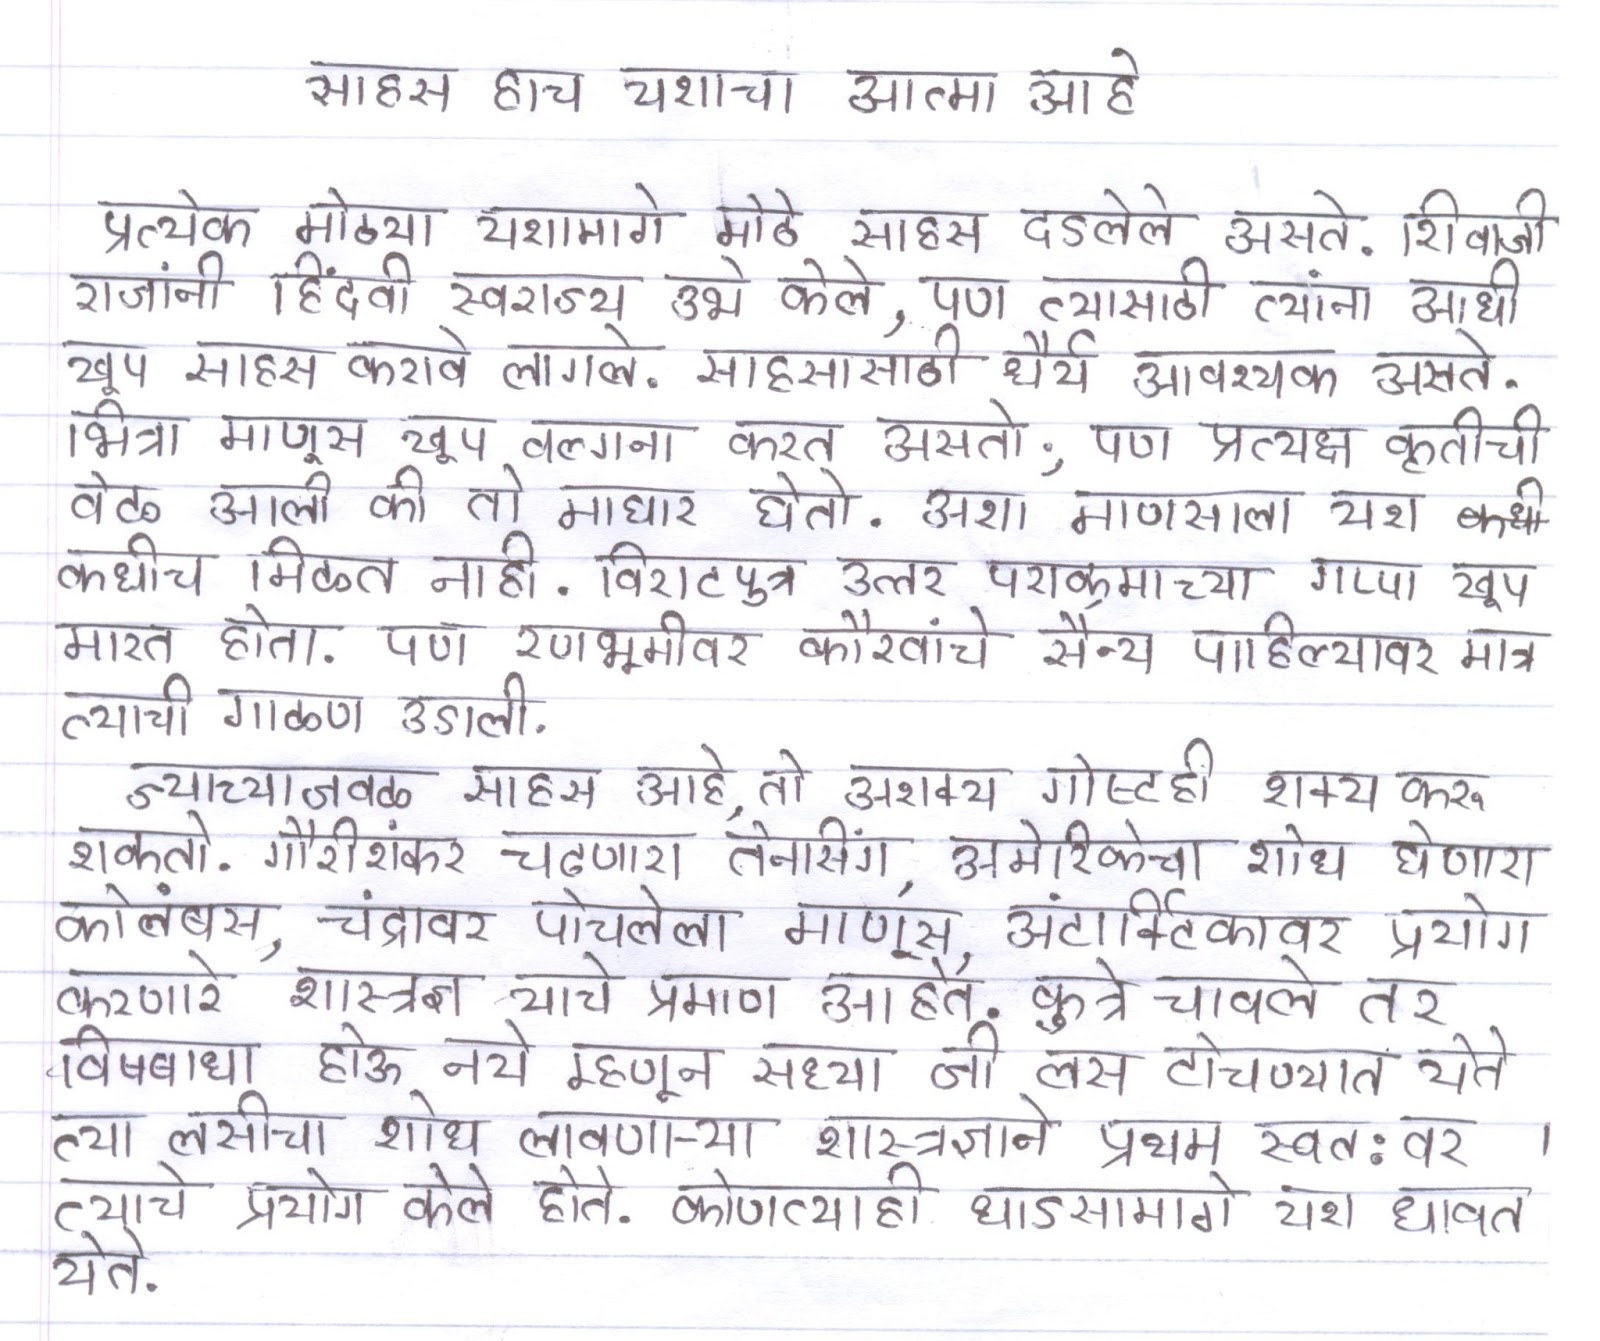 importance of nature essay in marathi language  importance of nature essay in marathi language